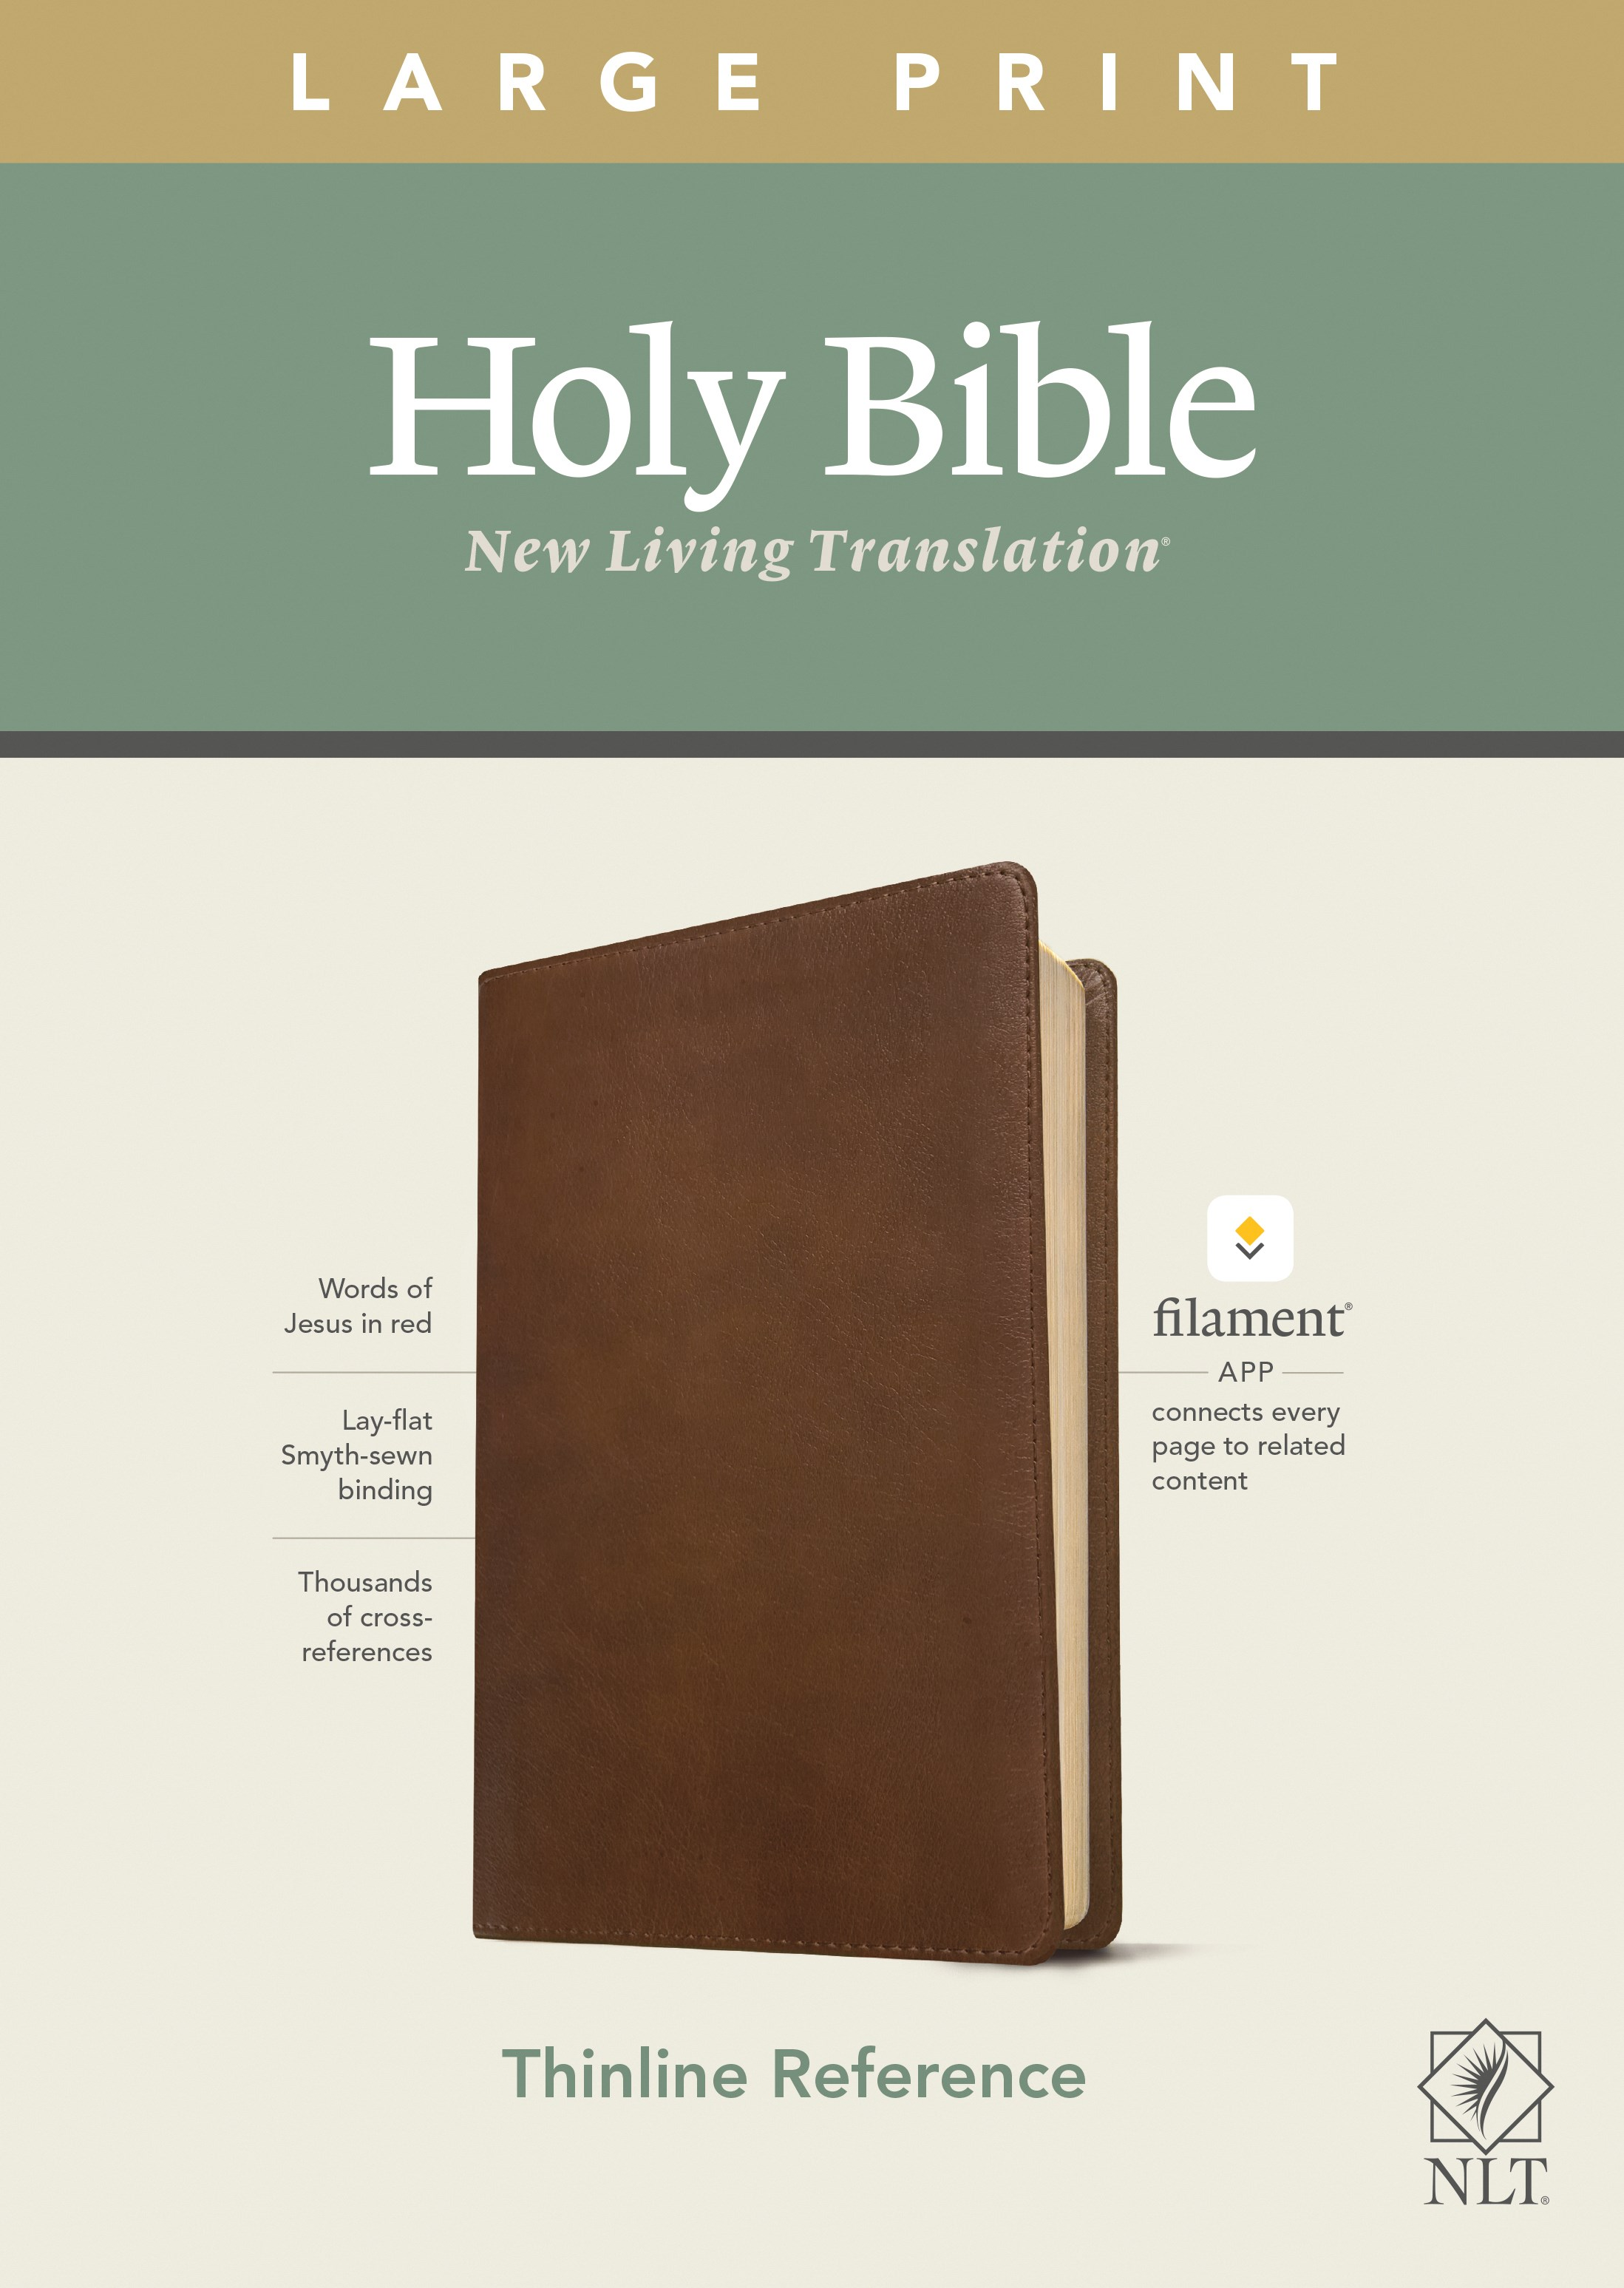 NLT Large Print Thinline Reference Bible/Filament Enabled Edition-Rustic Brown LeatherLike